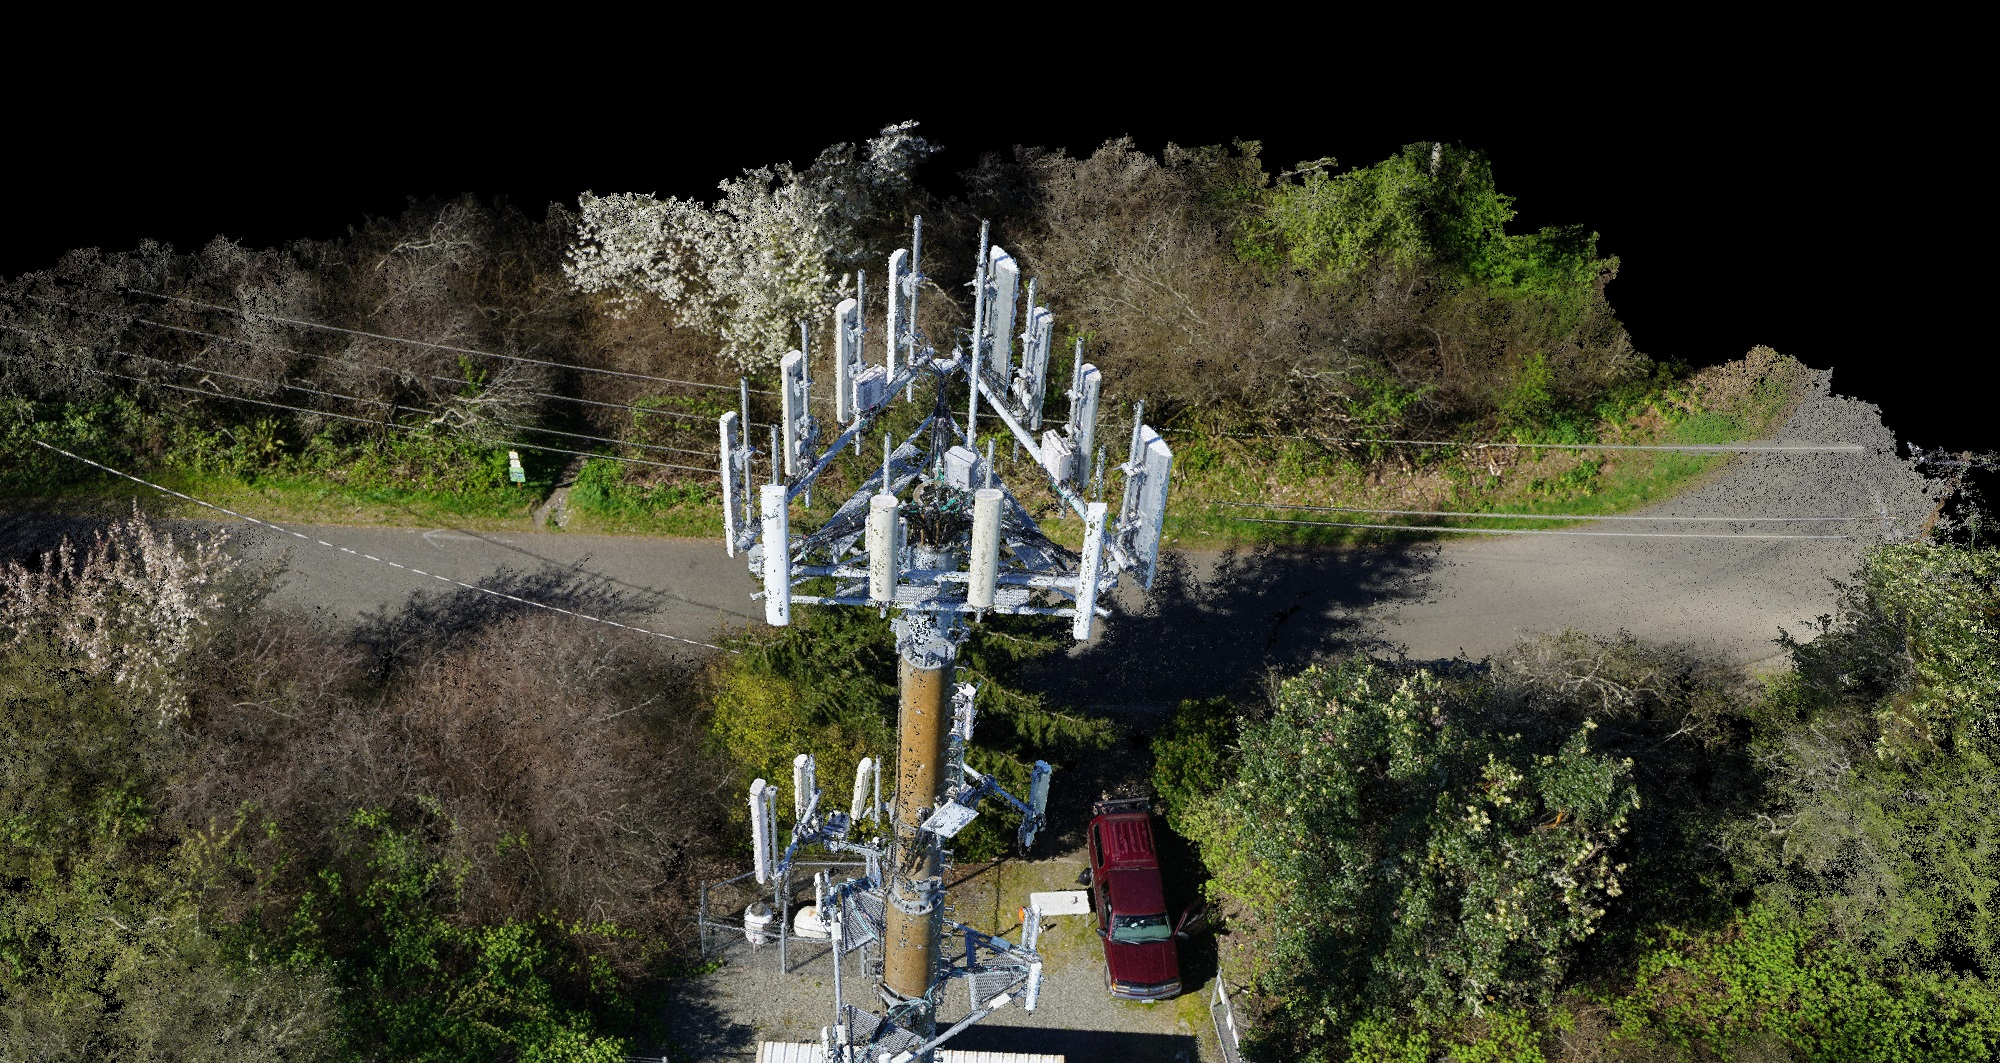 Drone inspection to design a new tower antenna mount   Pix4D